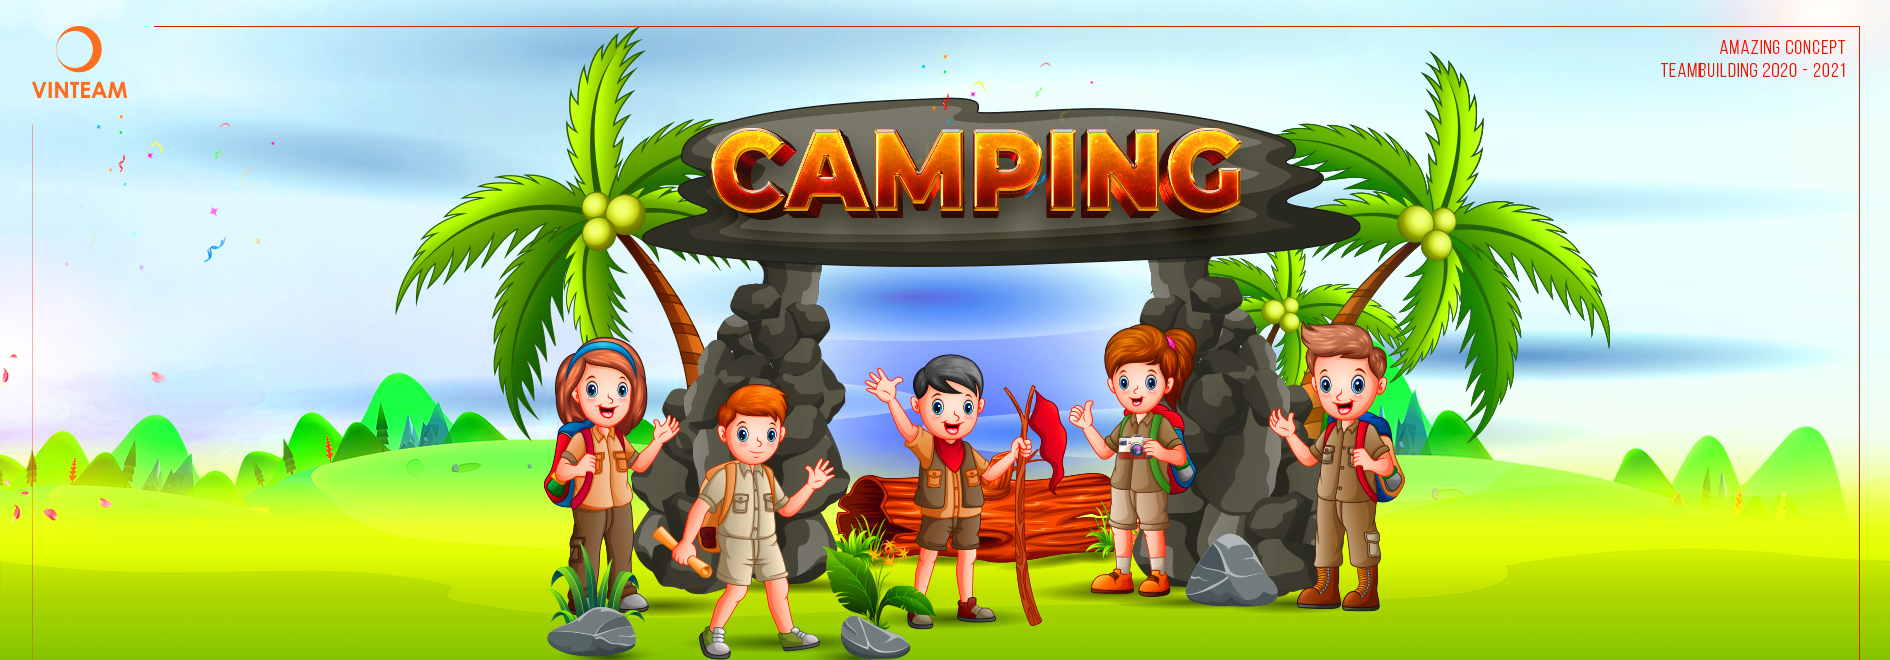 8.-cover-CAMPING